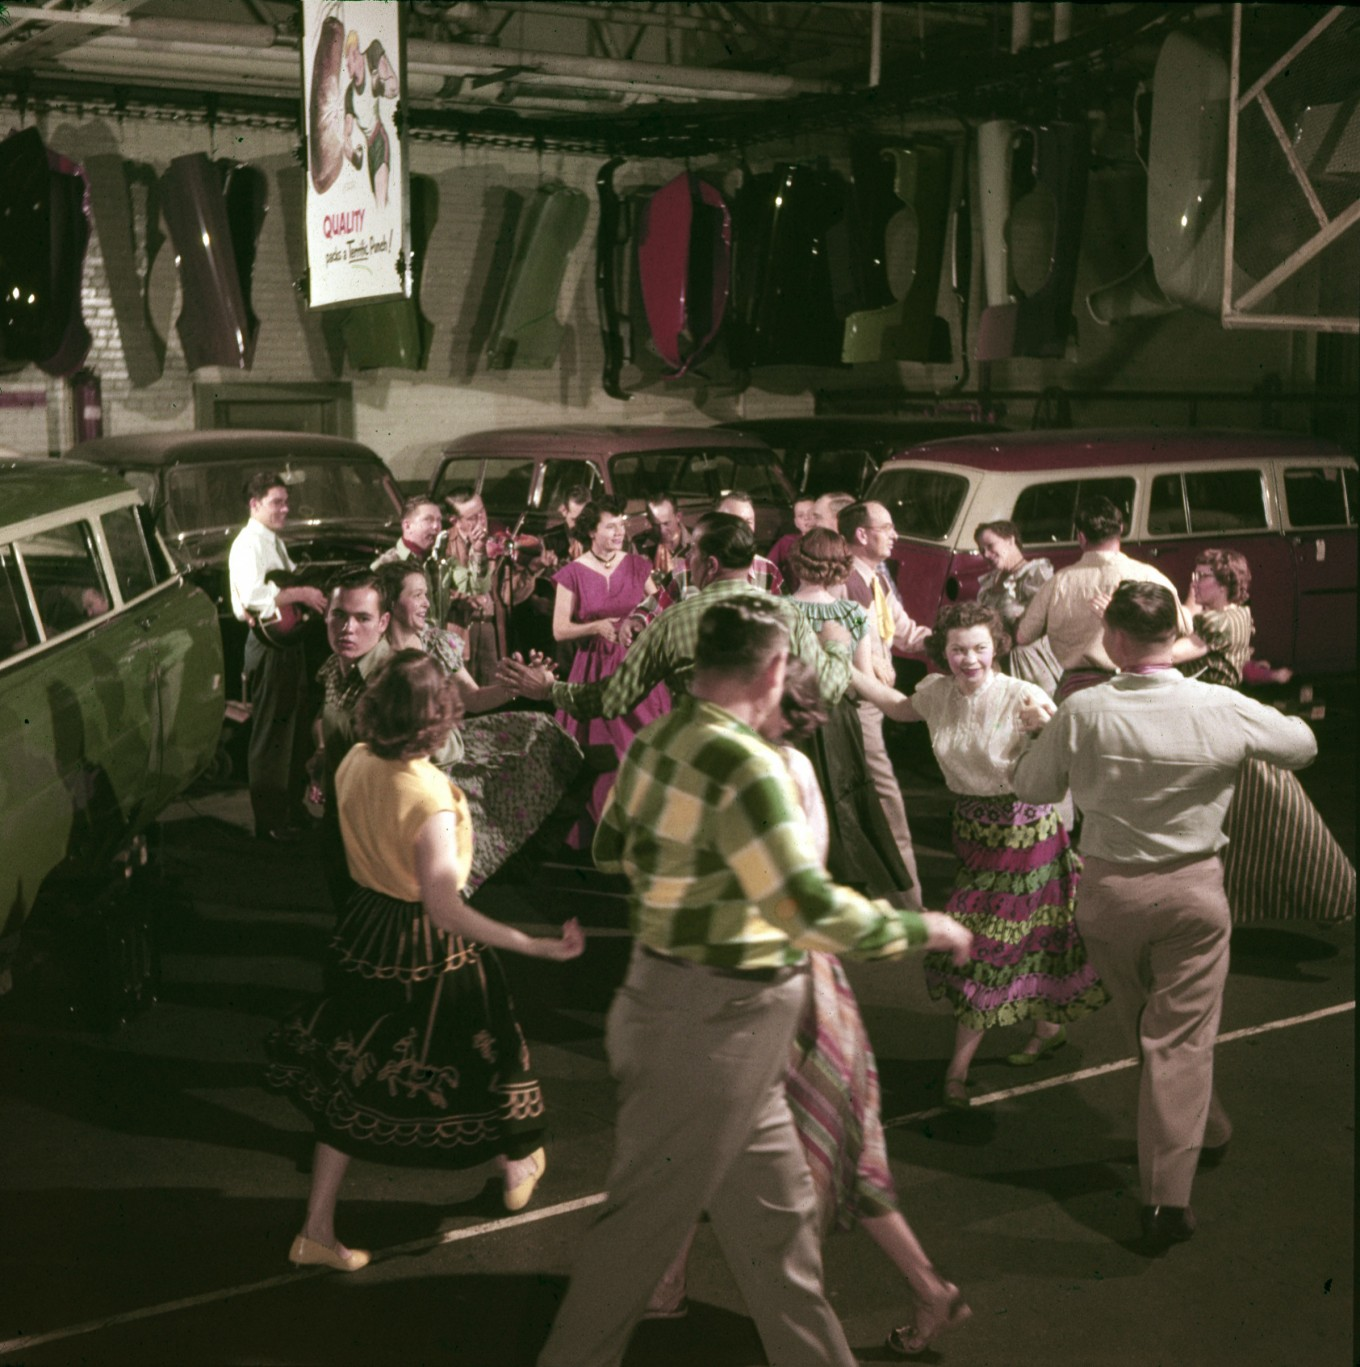 1952-Ford-Dallas-Assembly-Plant-monthly-square-dance-neg-C560-23_Tall